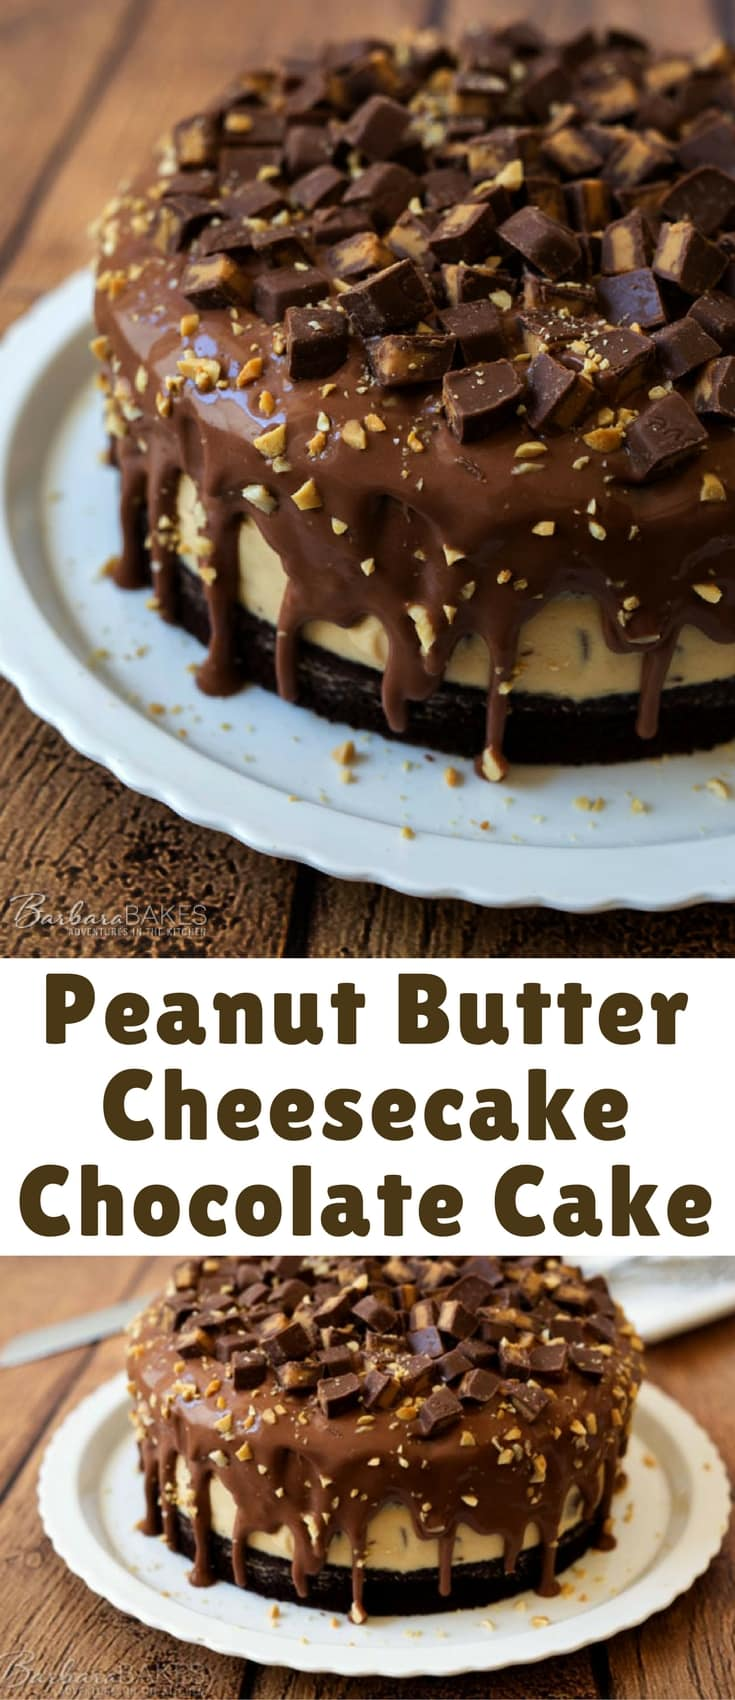 A rich, fudgy chocolate layer cake with a no-bake peanut butter cheesecake filling in the middle covered with a creamy, smooth milk chocolate ganache and finished with chopped Dove milk chocolate peanut butter candies and finely chopped peanuts.